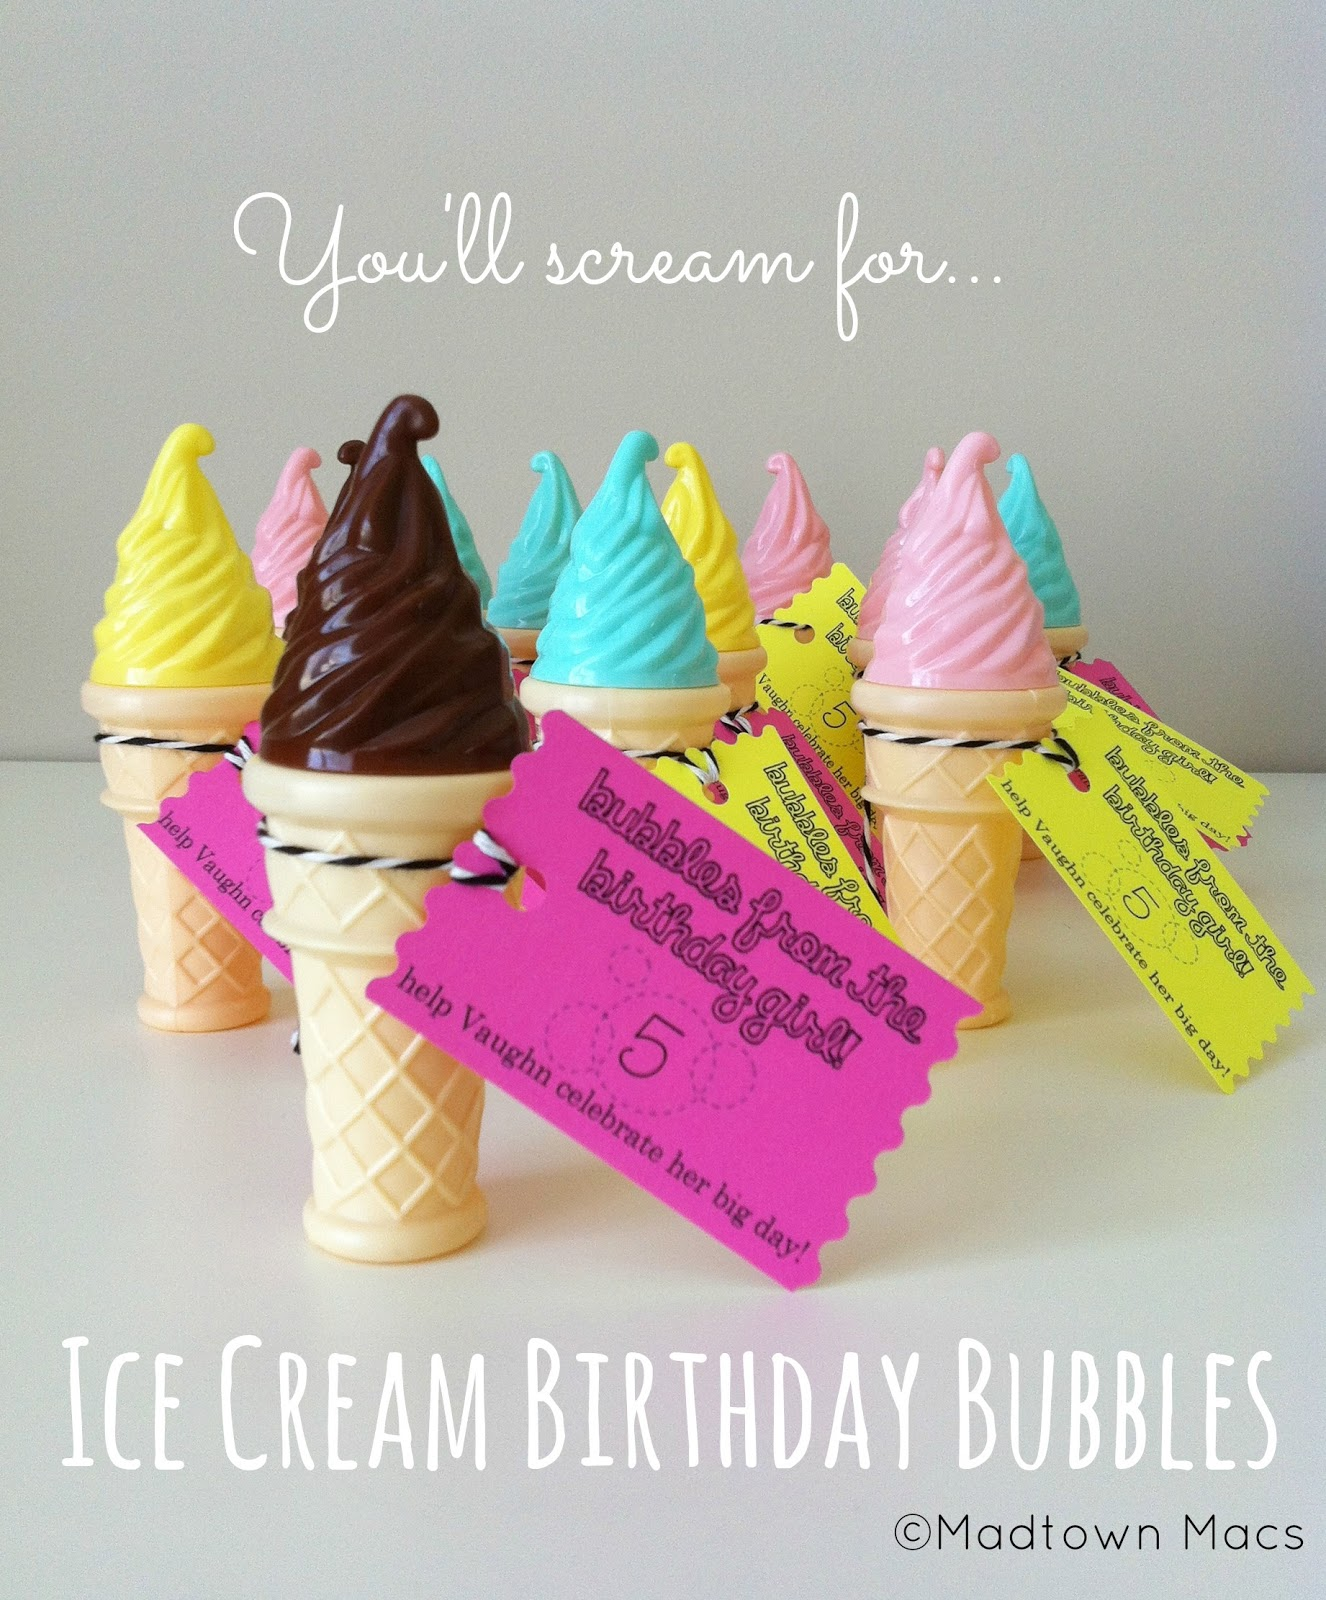 Classroom Birthday Ideas Non Food ~ Ice cream birthday bubbles non edible classroom treats